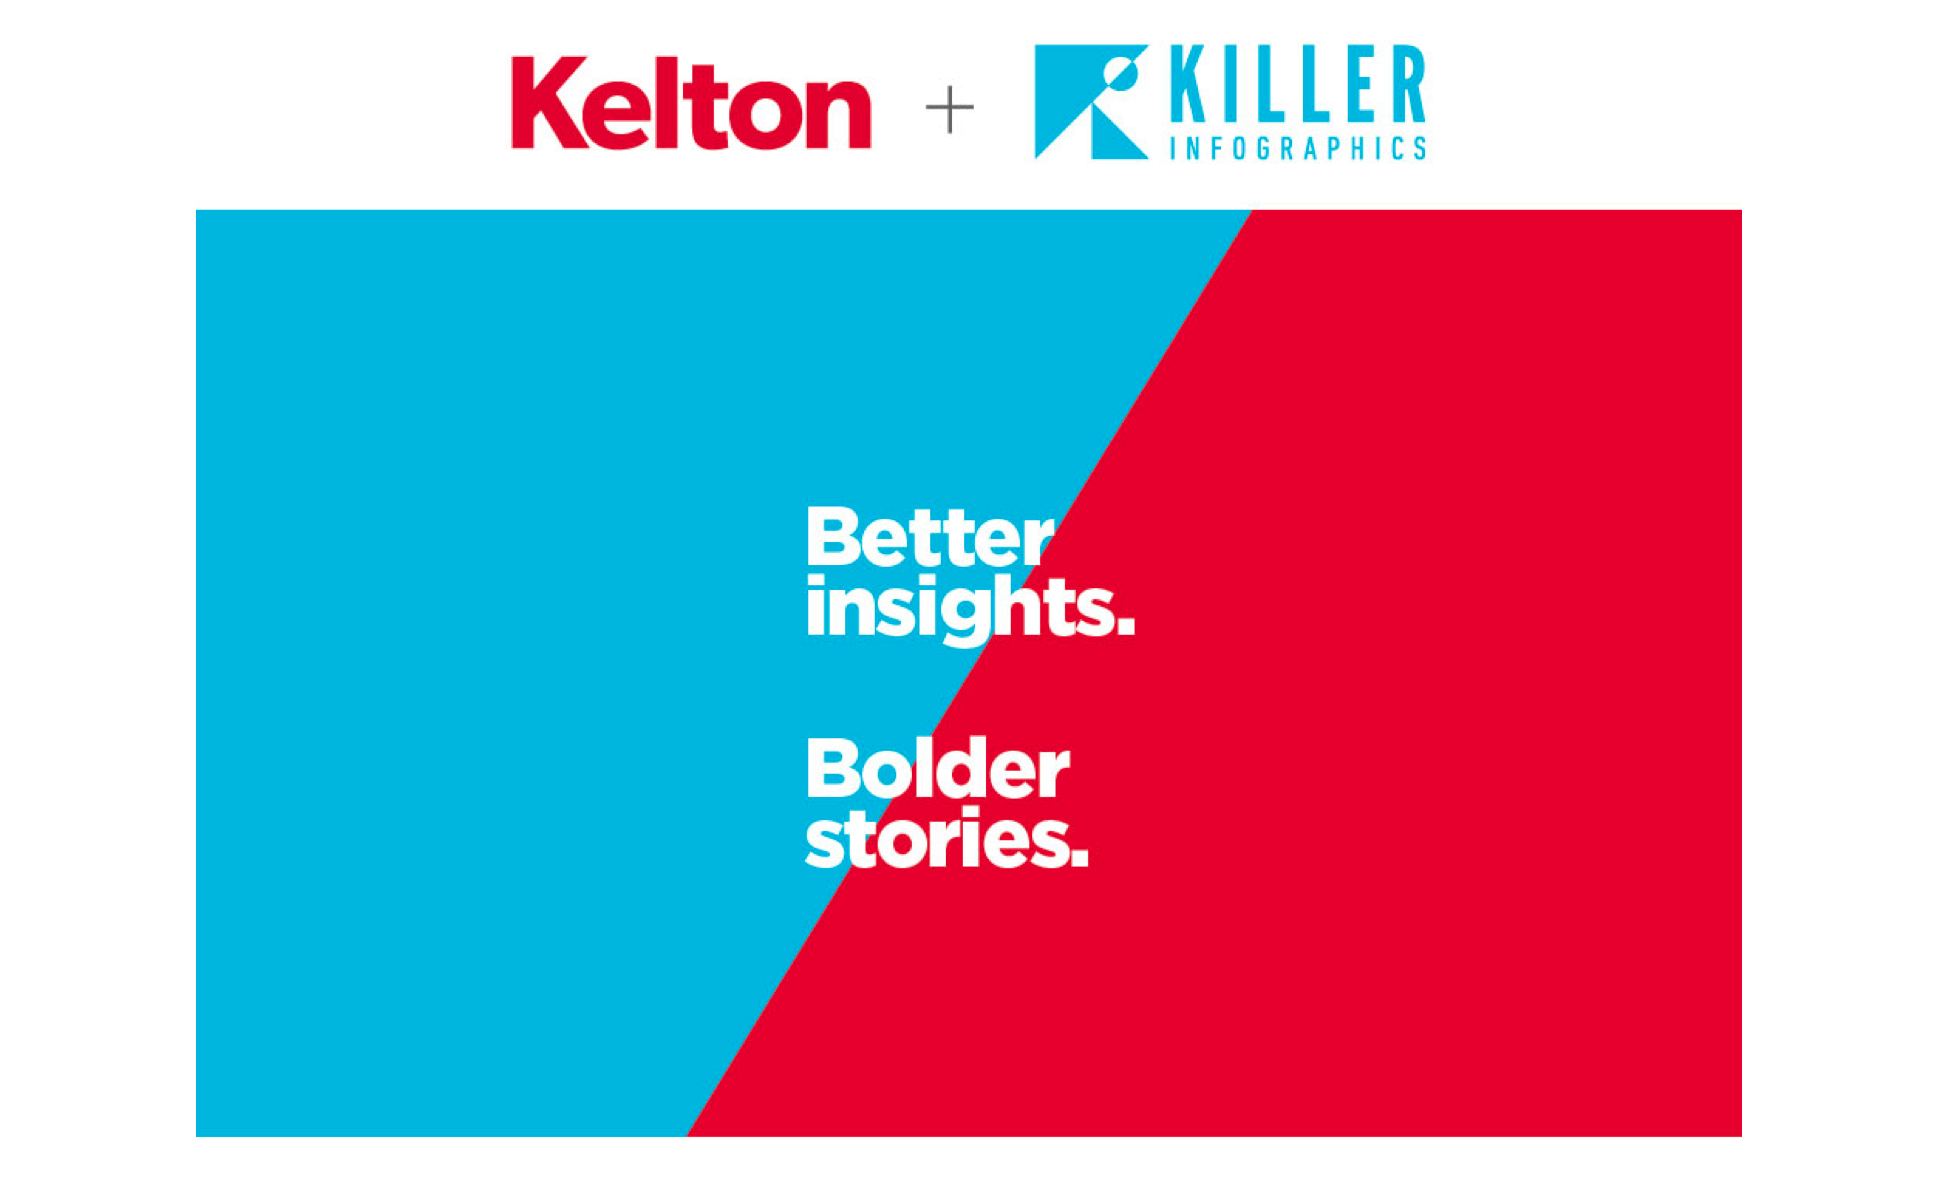 Kelton Global Acquires Killer Infographics